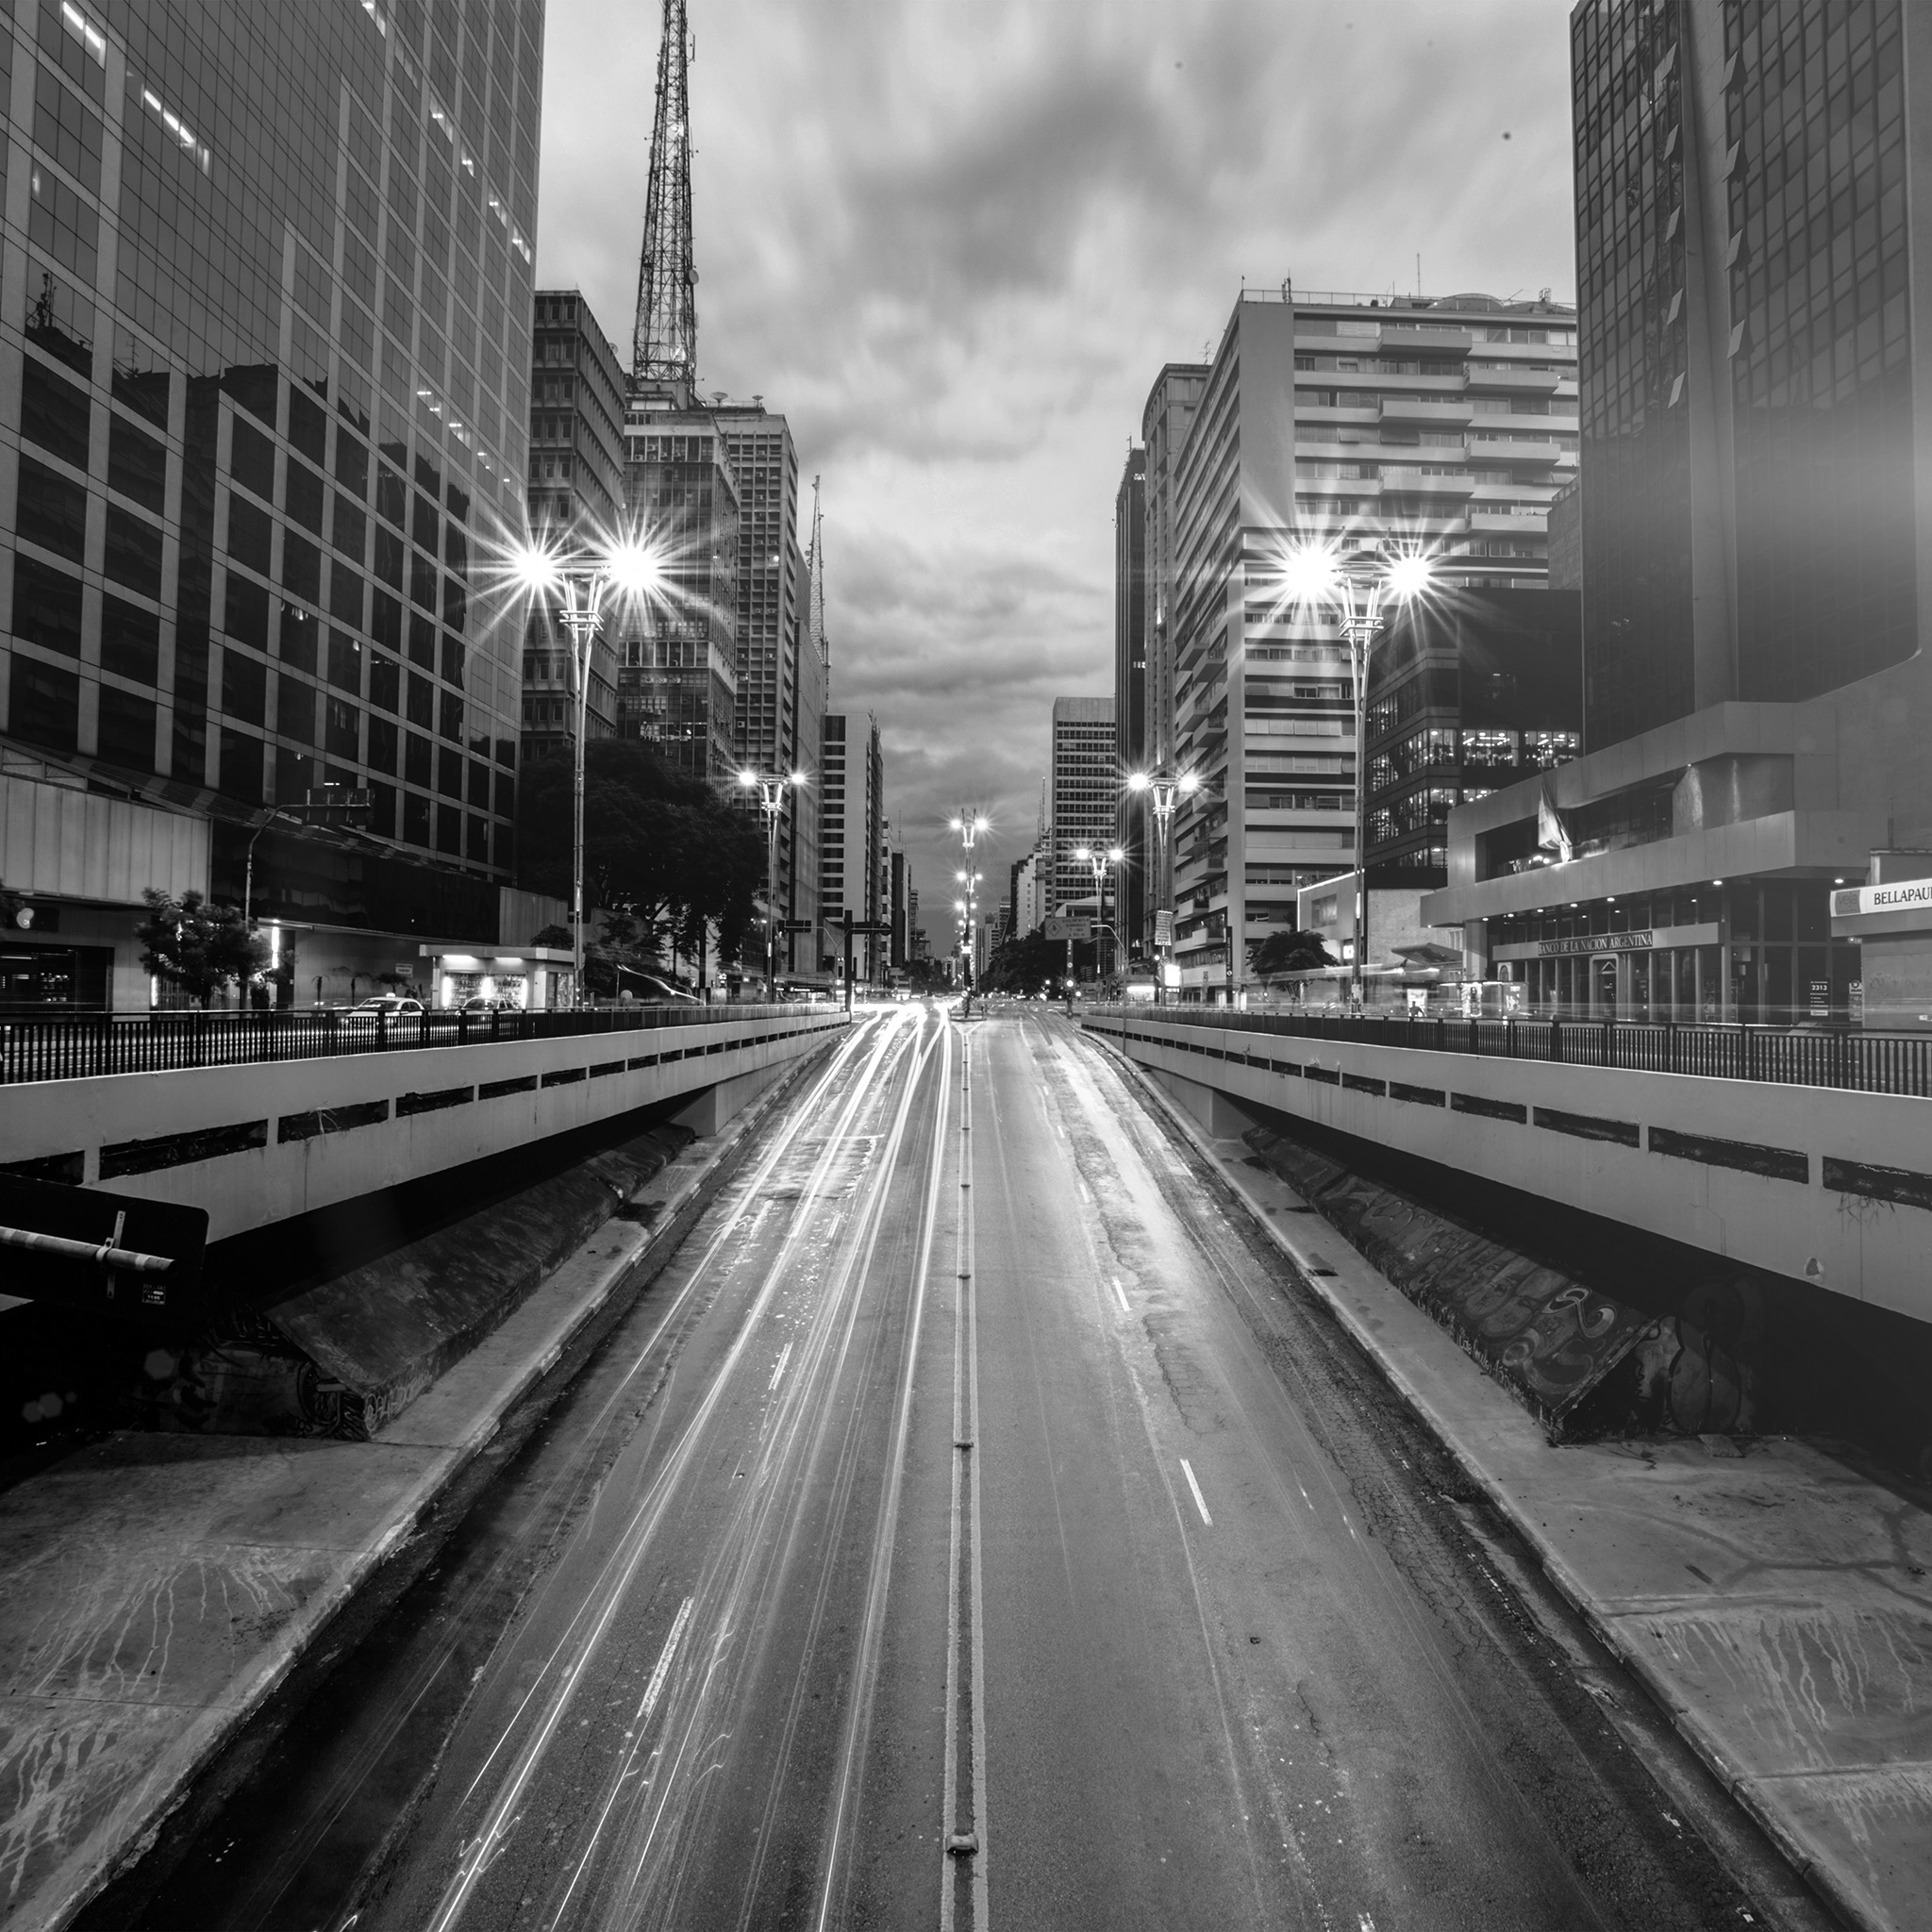 Smartphone Wallpaper Anime Nd21 City Street Light Bw Night Car Wallpaper